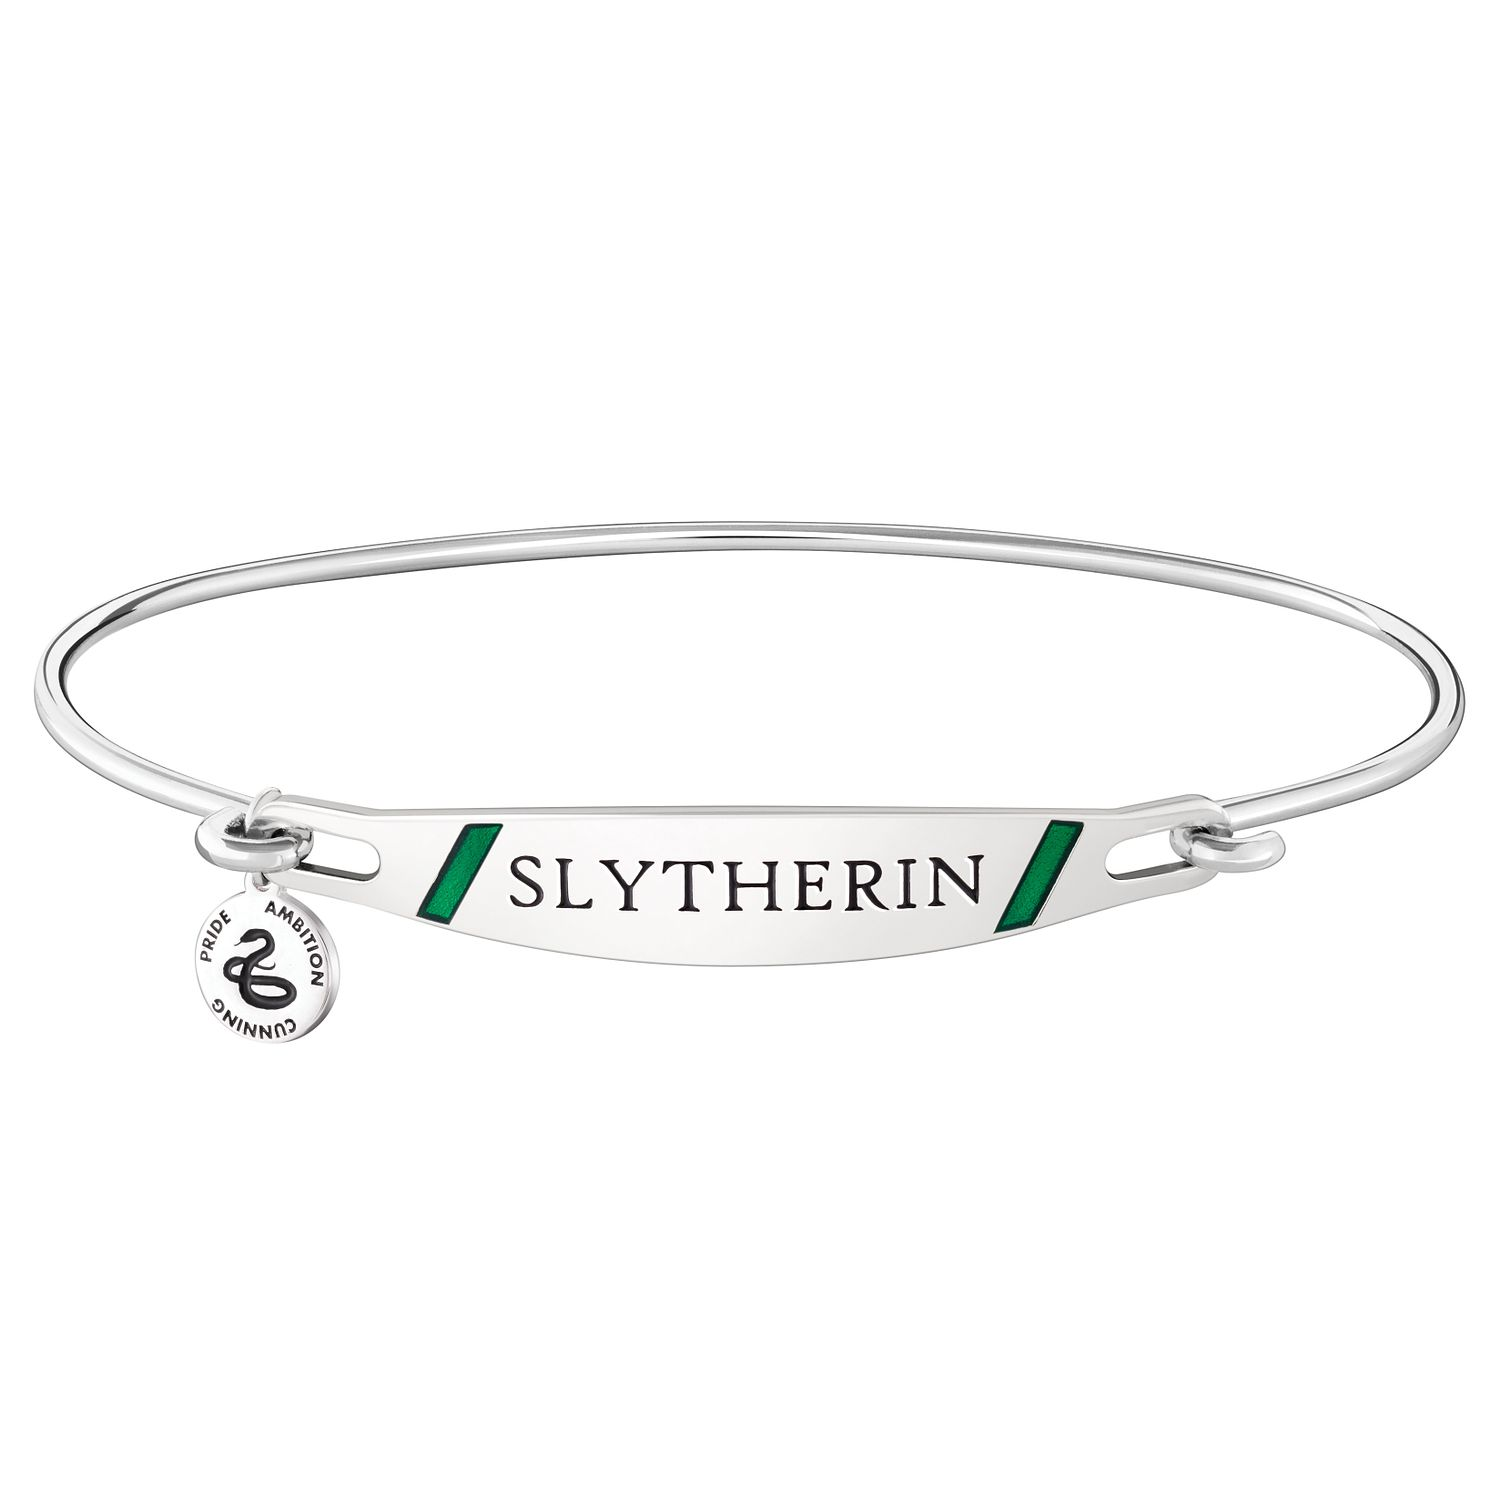 Chamilia Harry Potter Slytherin Bangle - Green Enamel, M/L - Product number 3172295